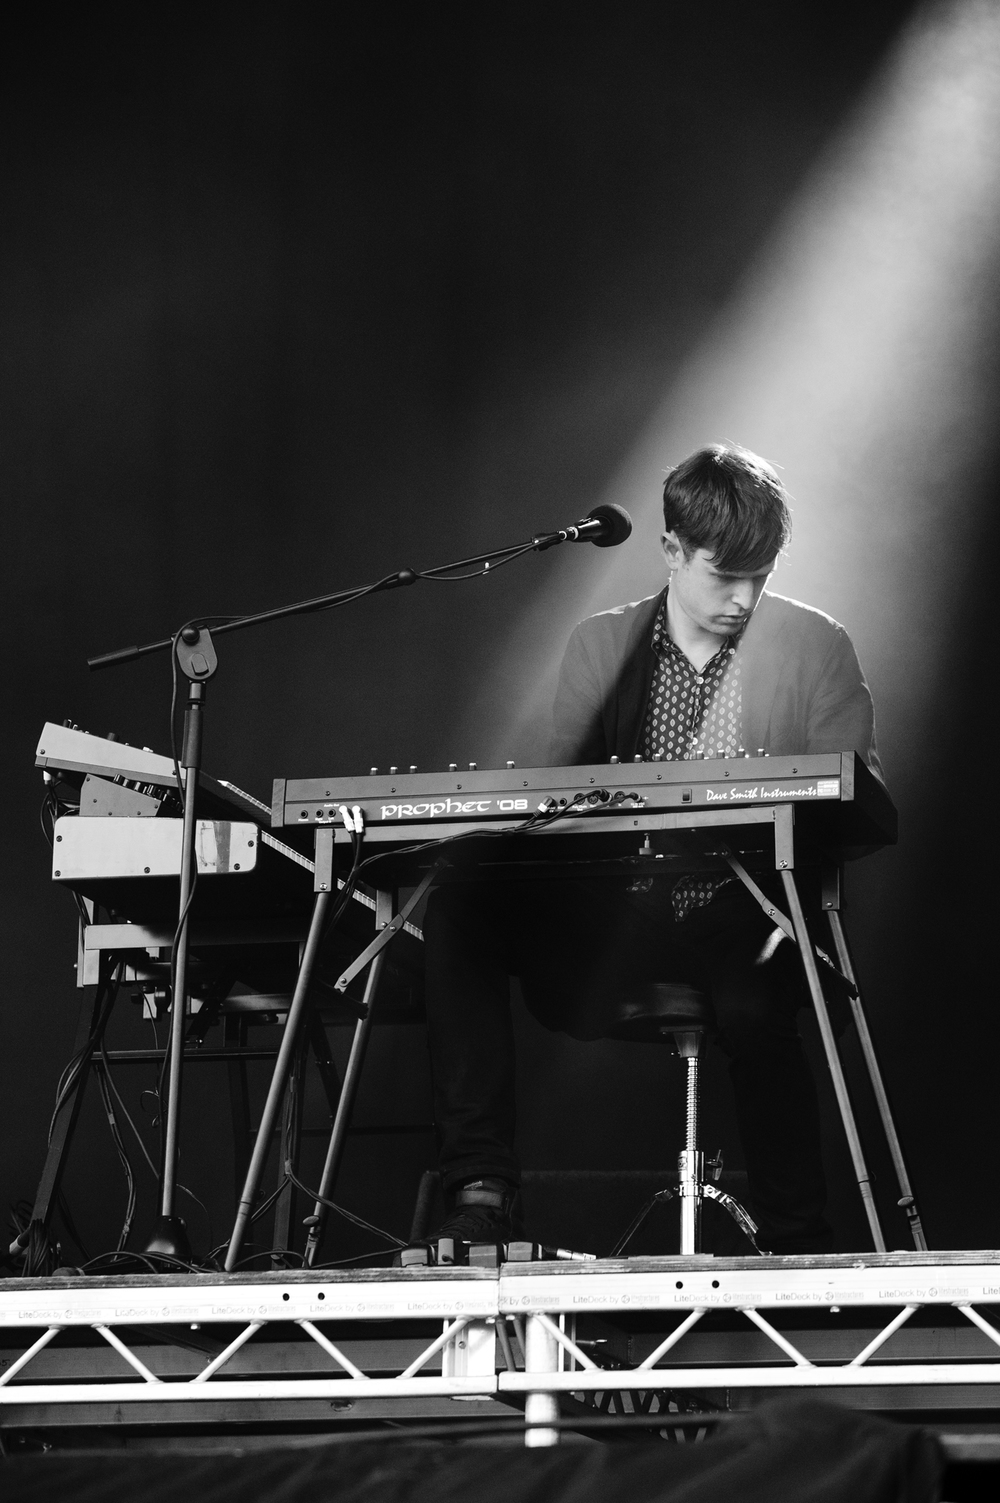 James Blake: Distributor of the world's scariest basslines.